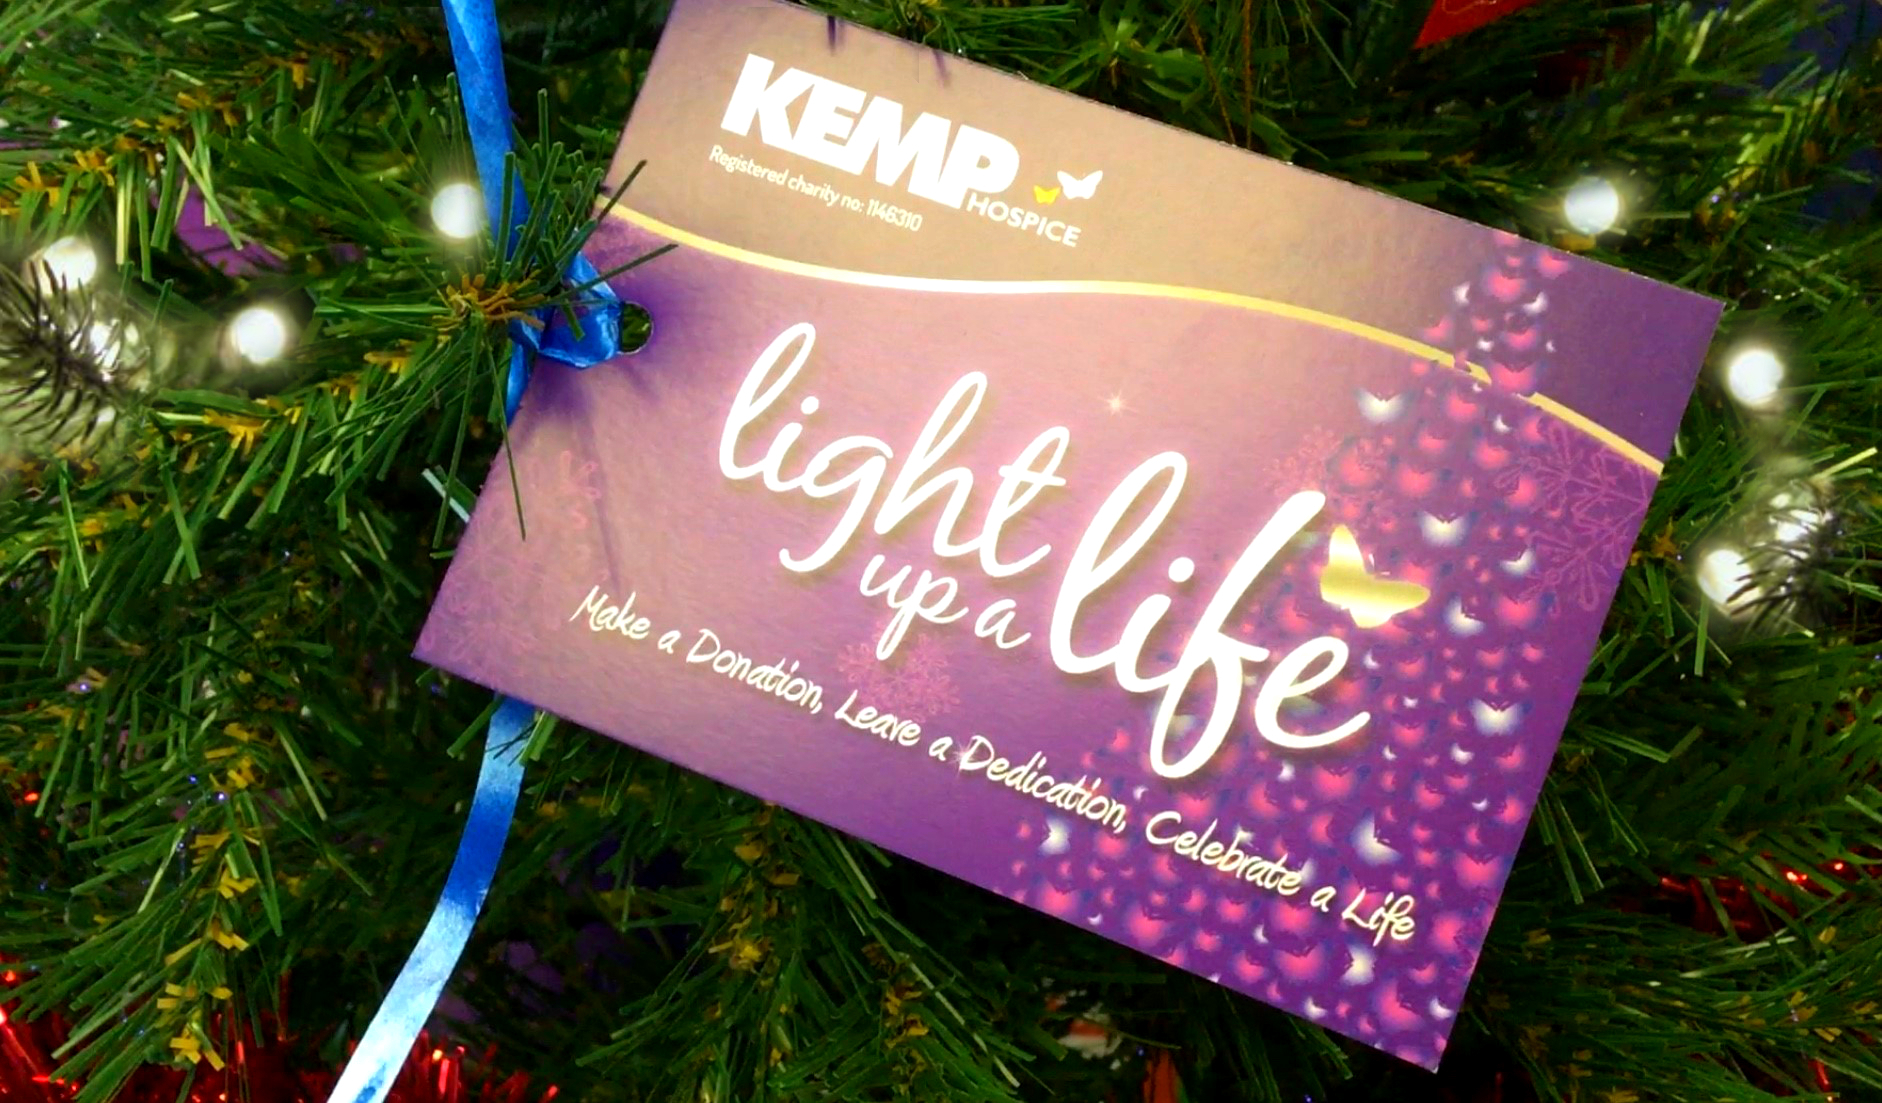 Kemp Hospice is launching its 25th Light up a Life campaign